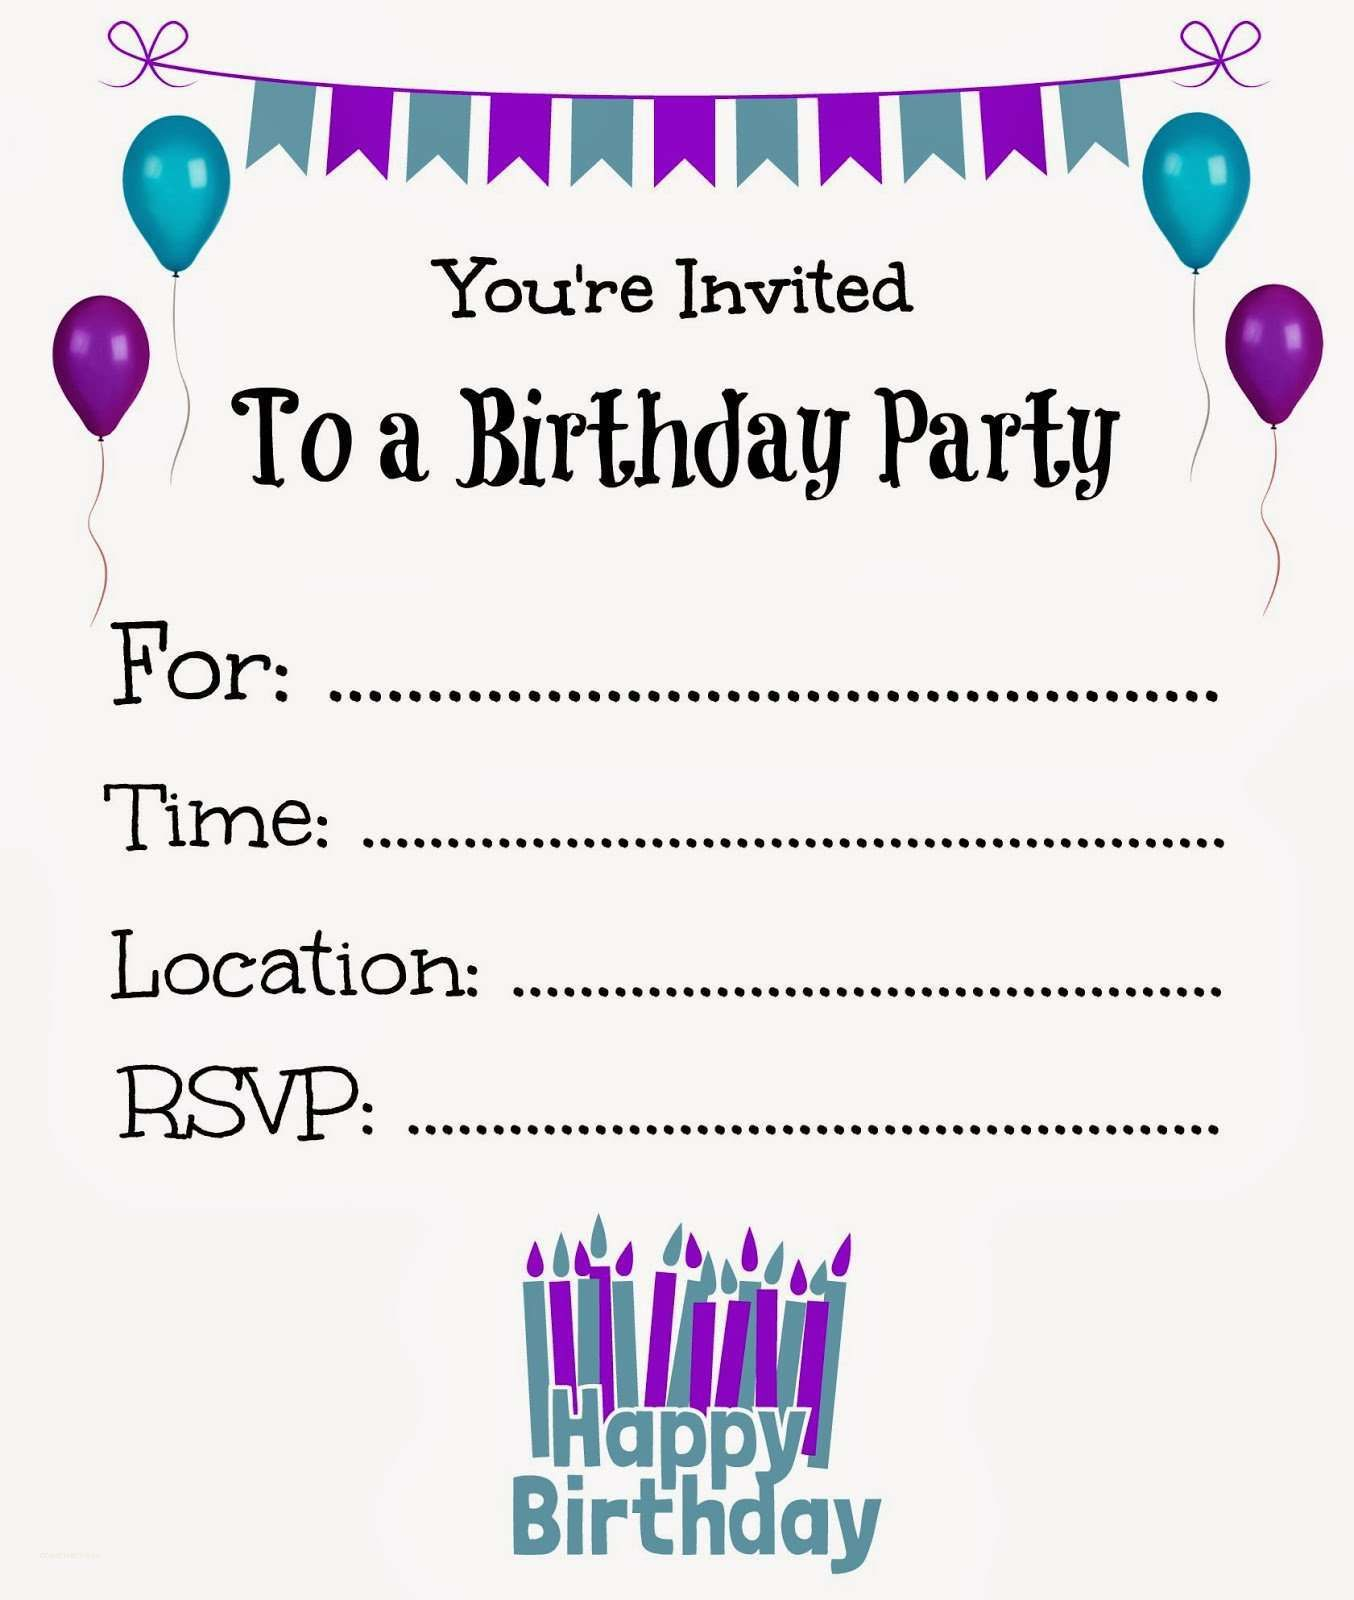 New free online printable birthday party invitations birthday free online printable birthday party invitations new free online printable birthday party invitations free monicamarmolfo Gallery